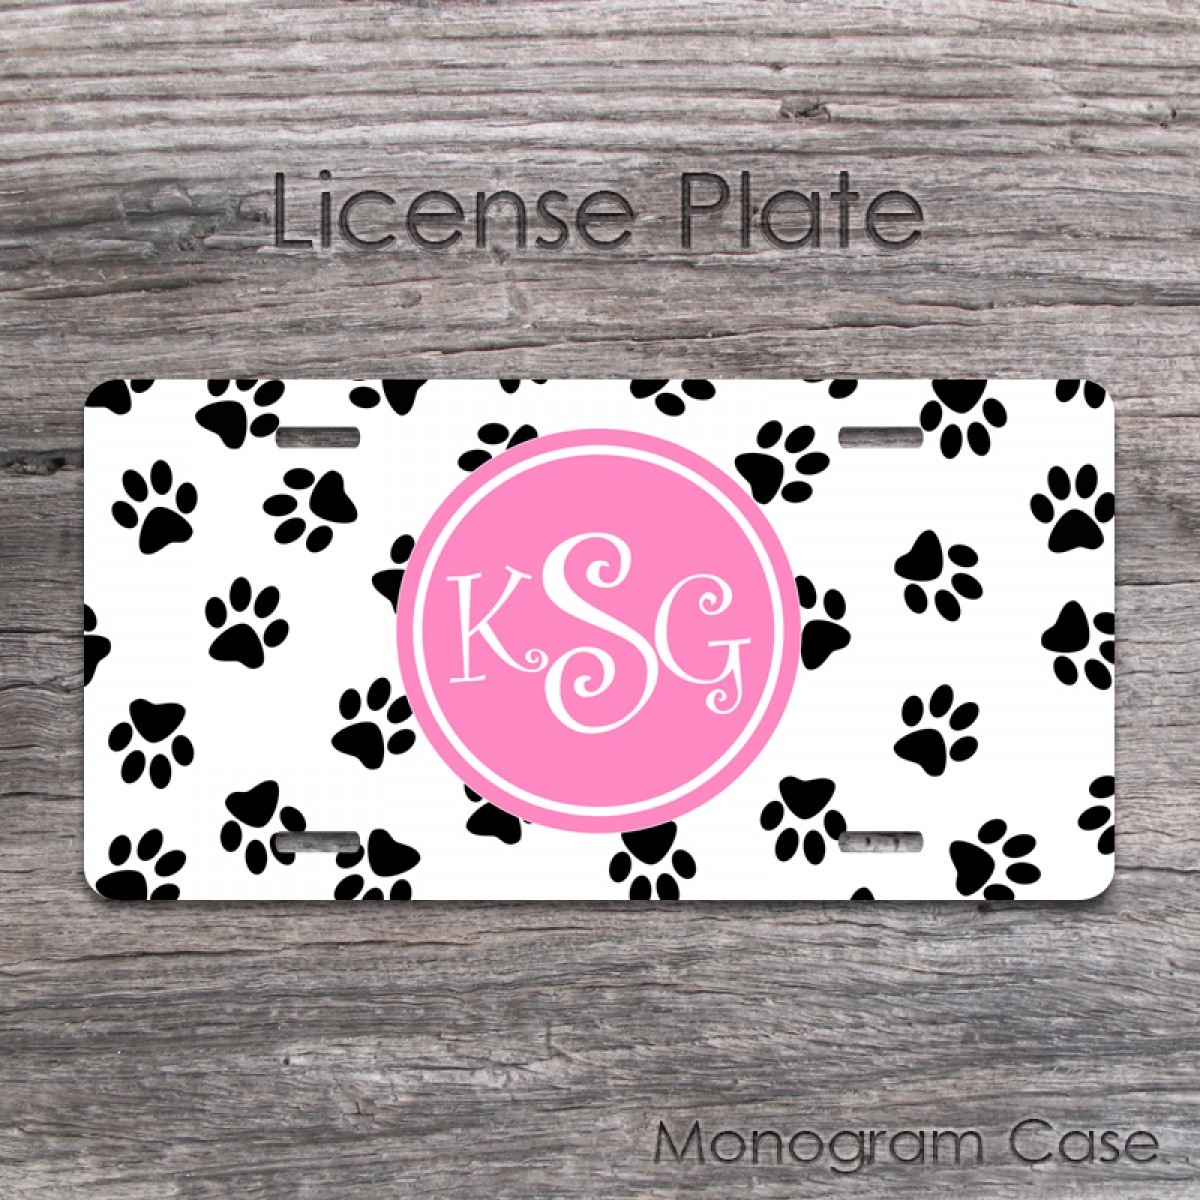 Animal print license plate pink monogrammed label design| MonogramCase